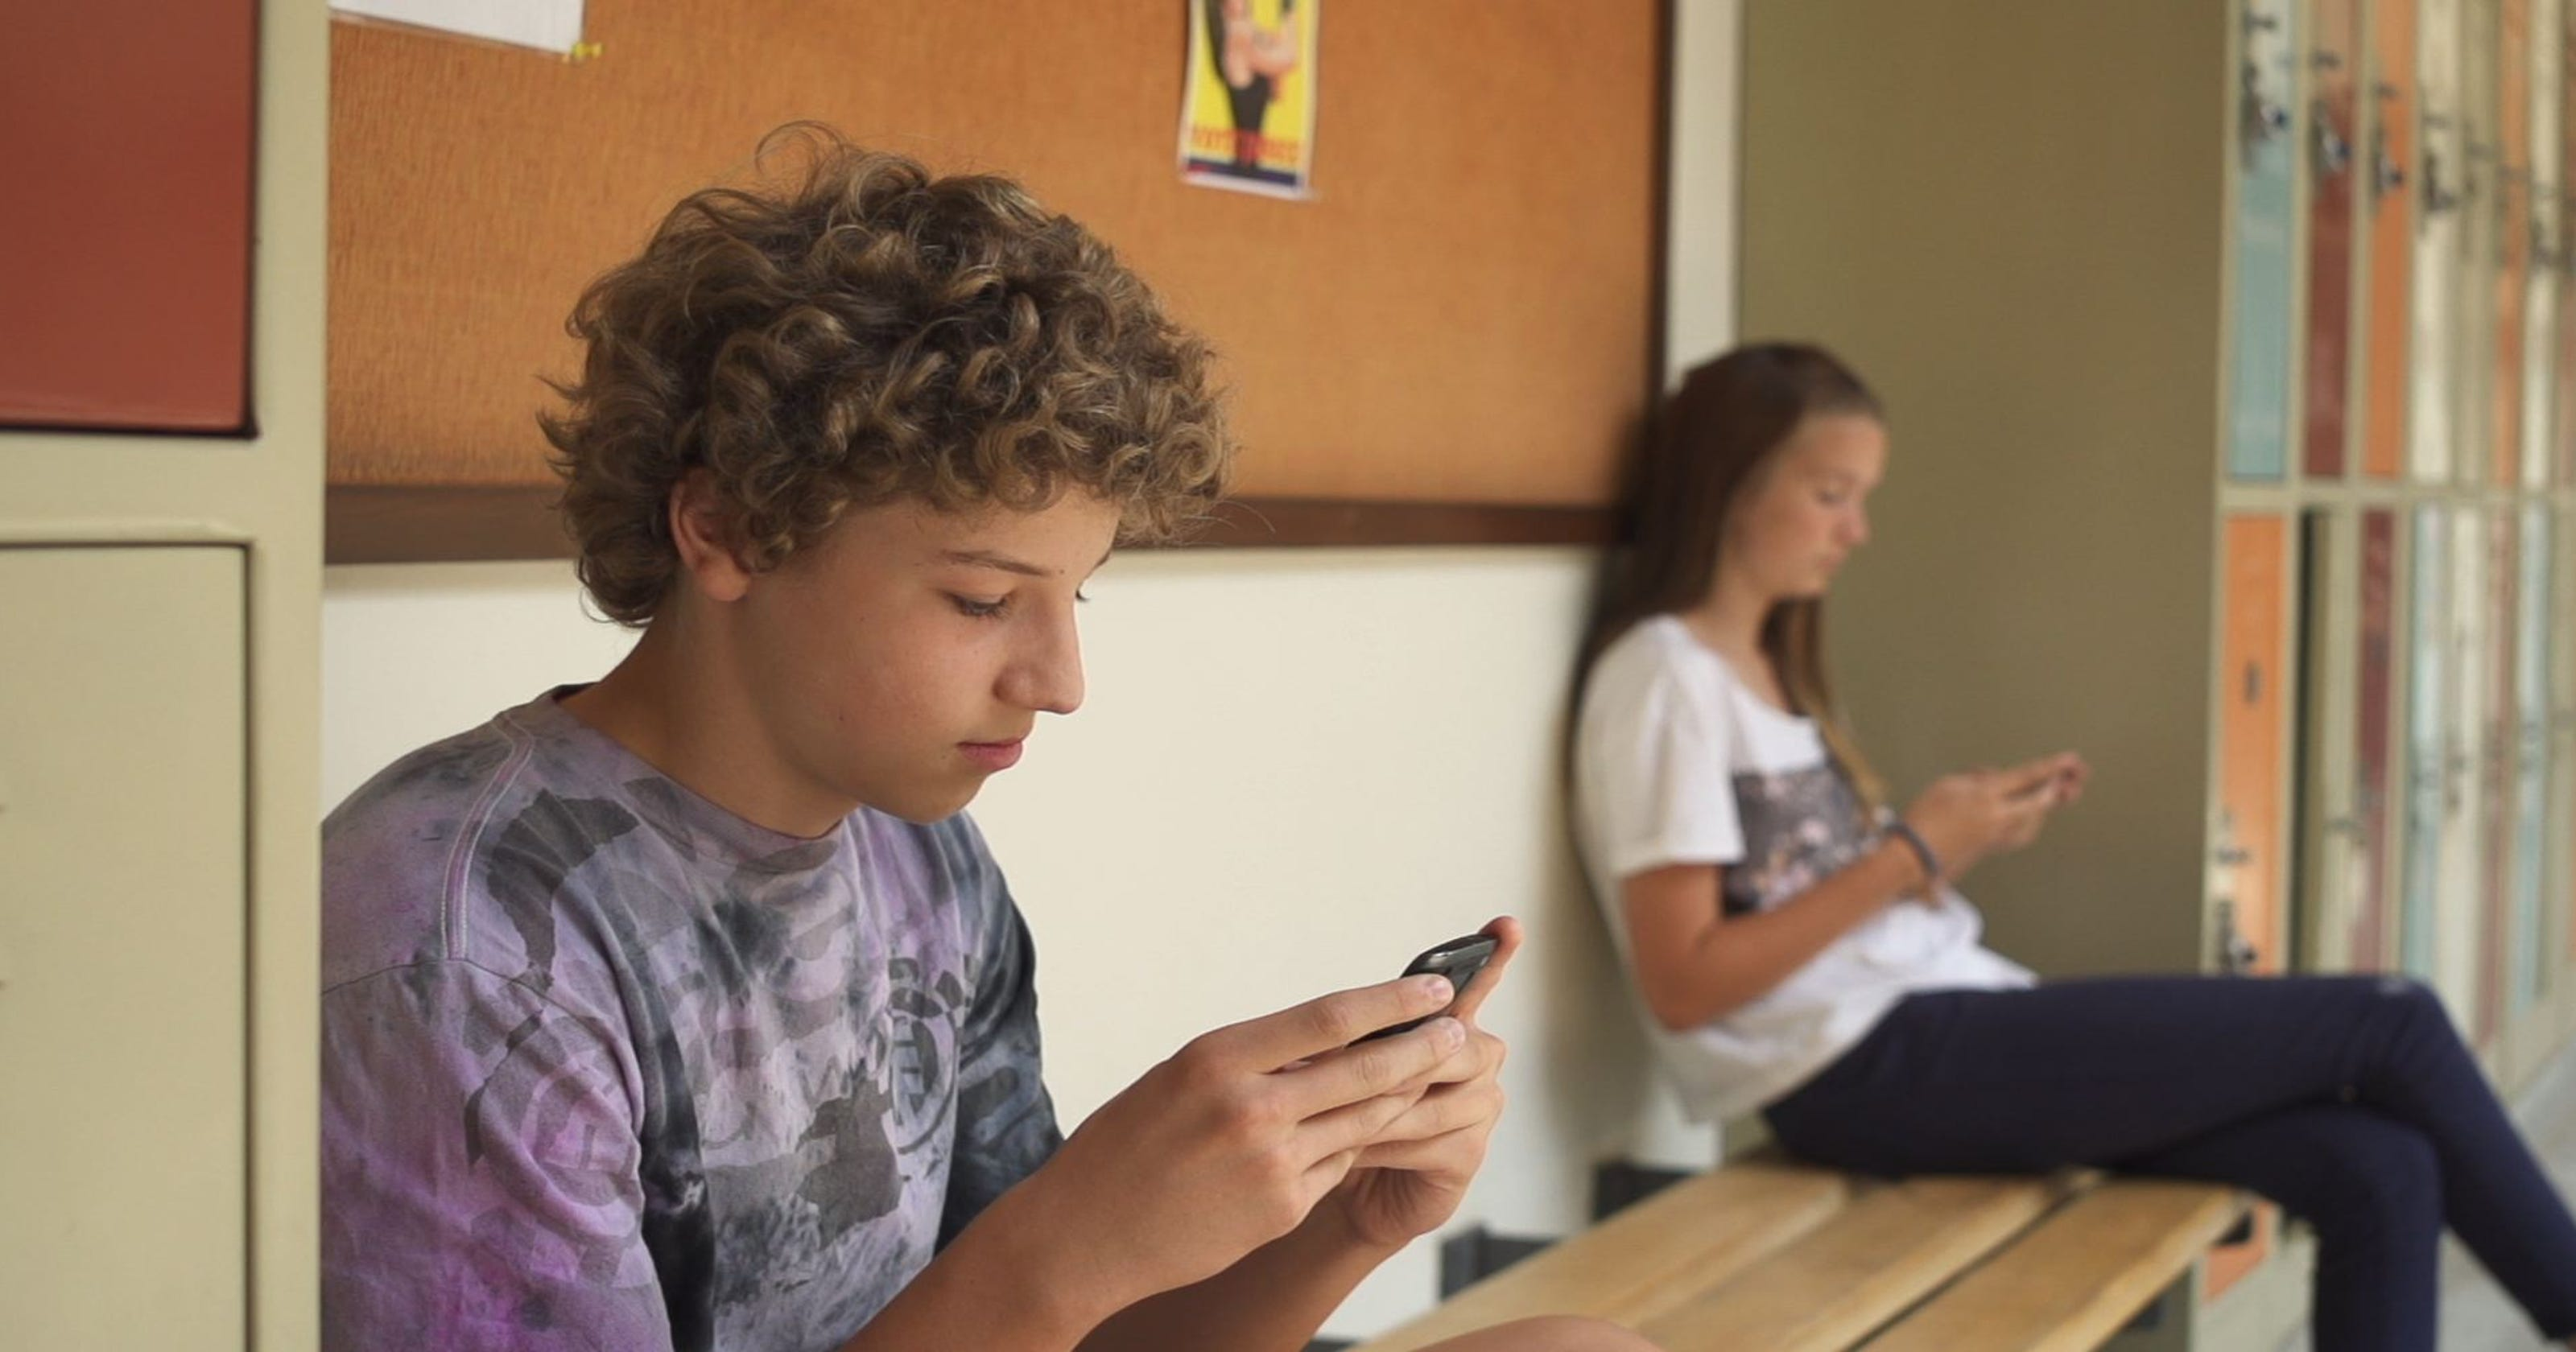 Smartphones at school: Should students have them in classrooms?